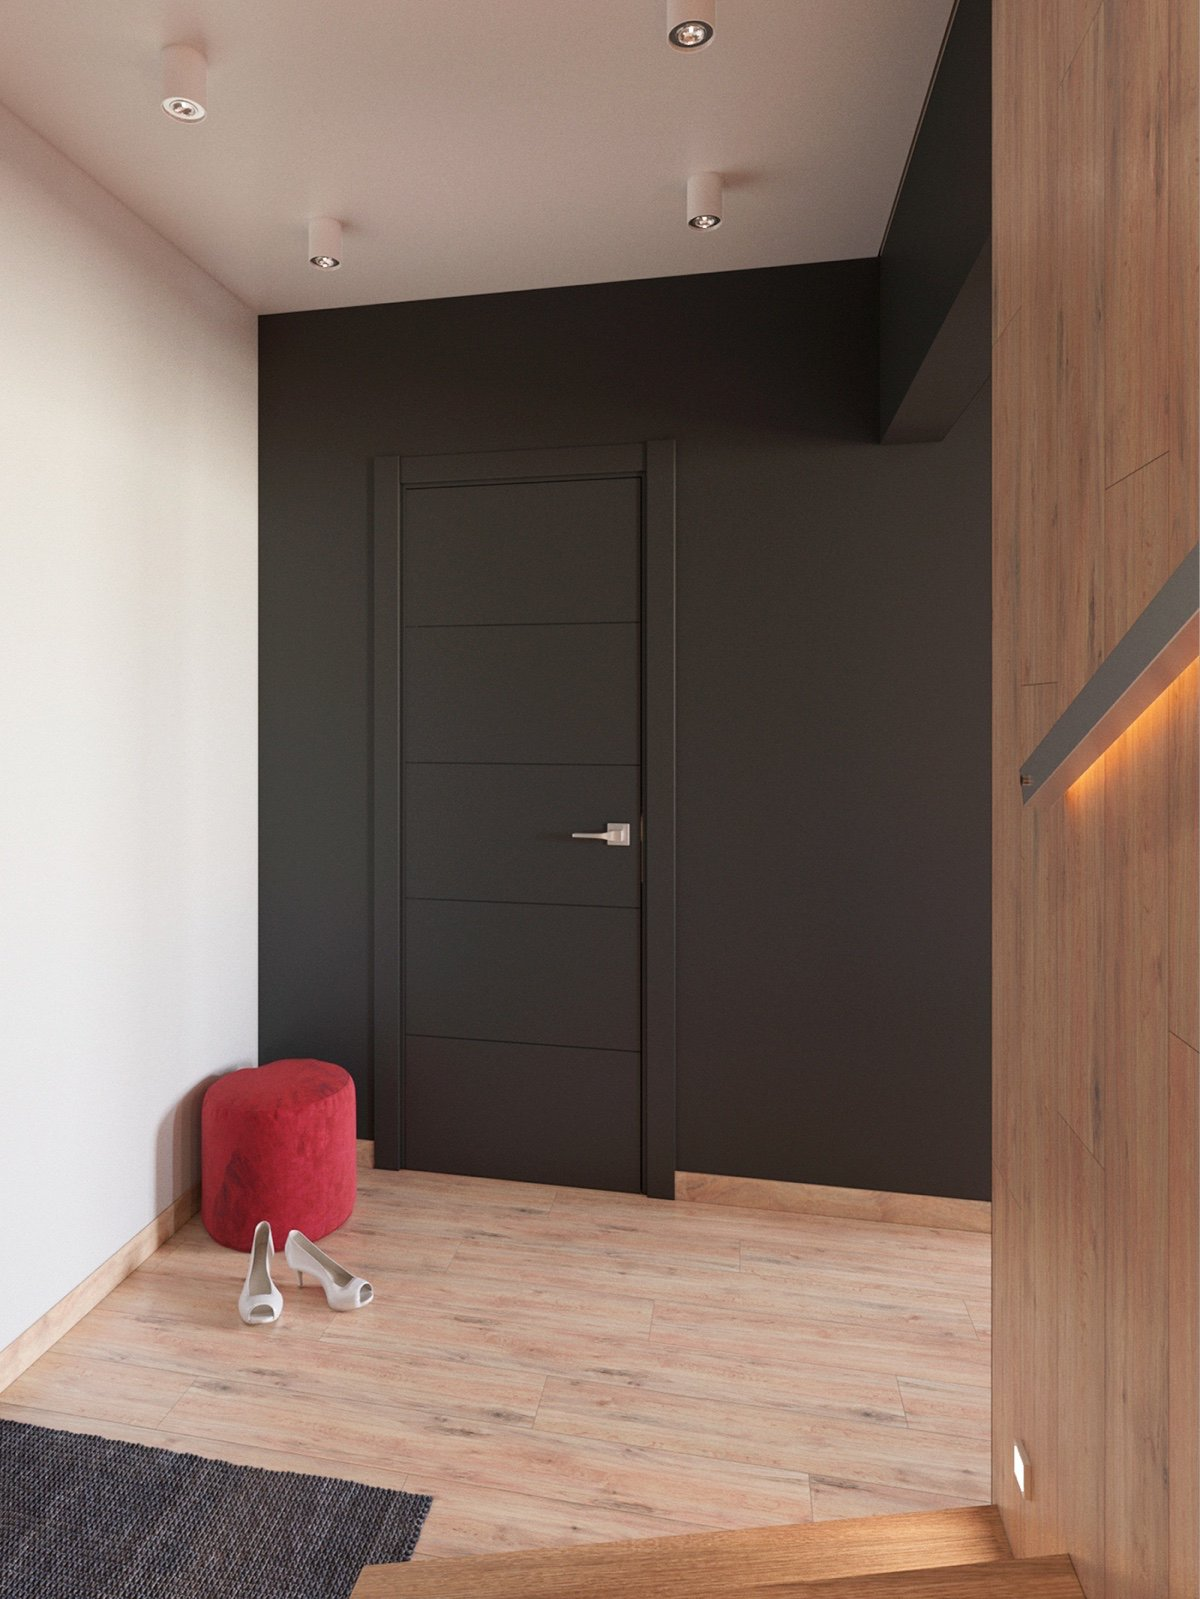 Dark Gray Wall - 3 modern apartment interiors that masterfully demonstrate how to use red as an artistic accent